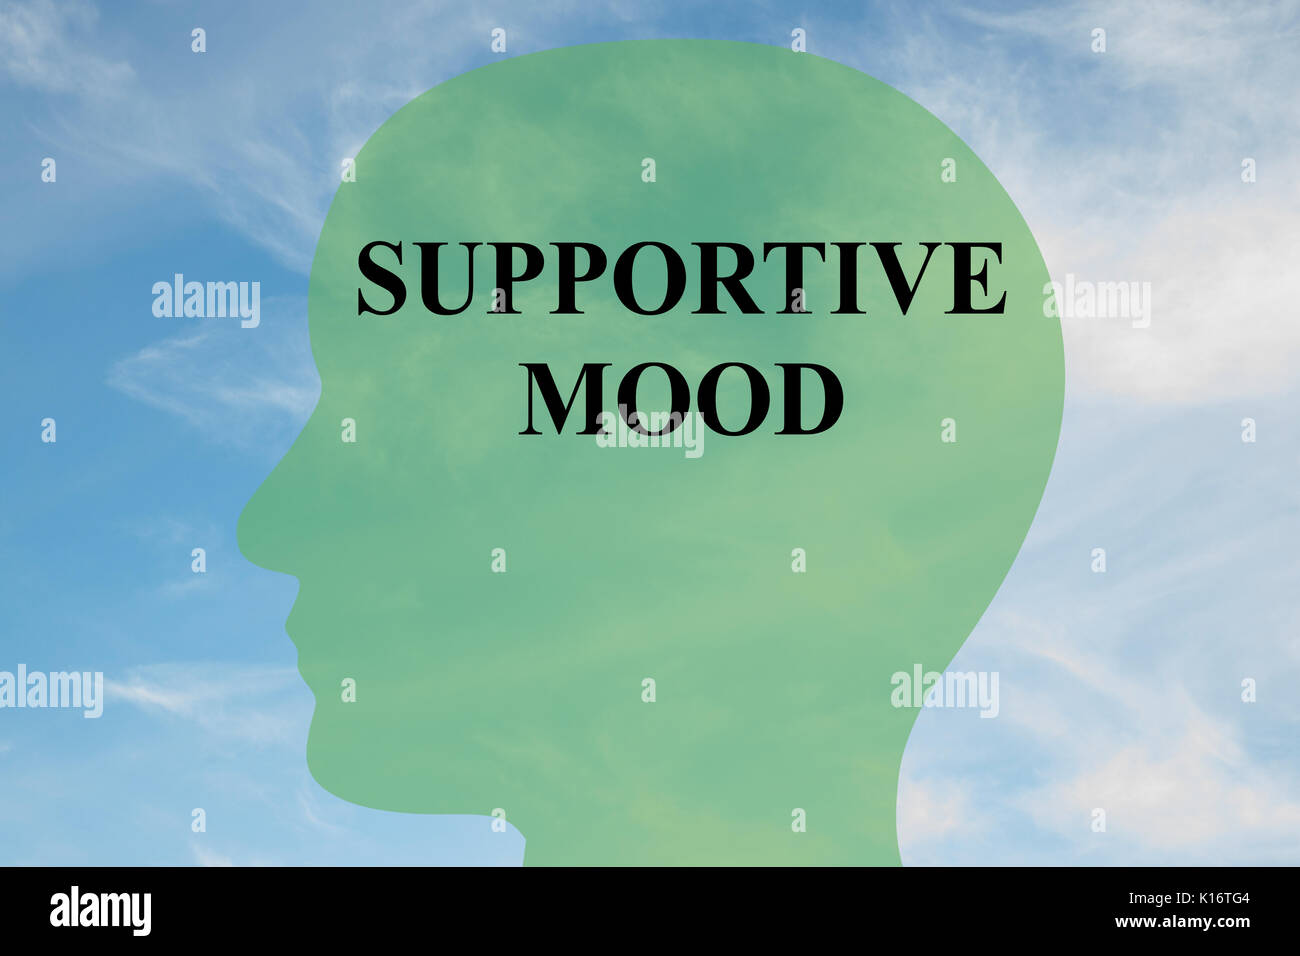 Render illustration of 'SUPPORTIVE MOOD' script on head silhouette, with cloudy sky as a background. - Stock Image